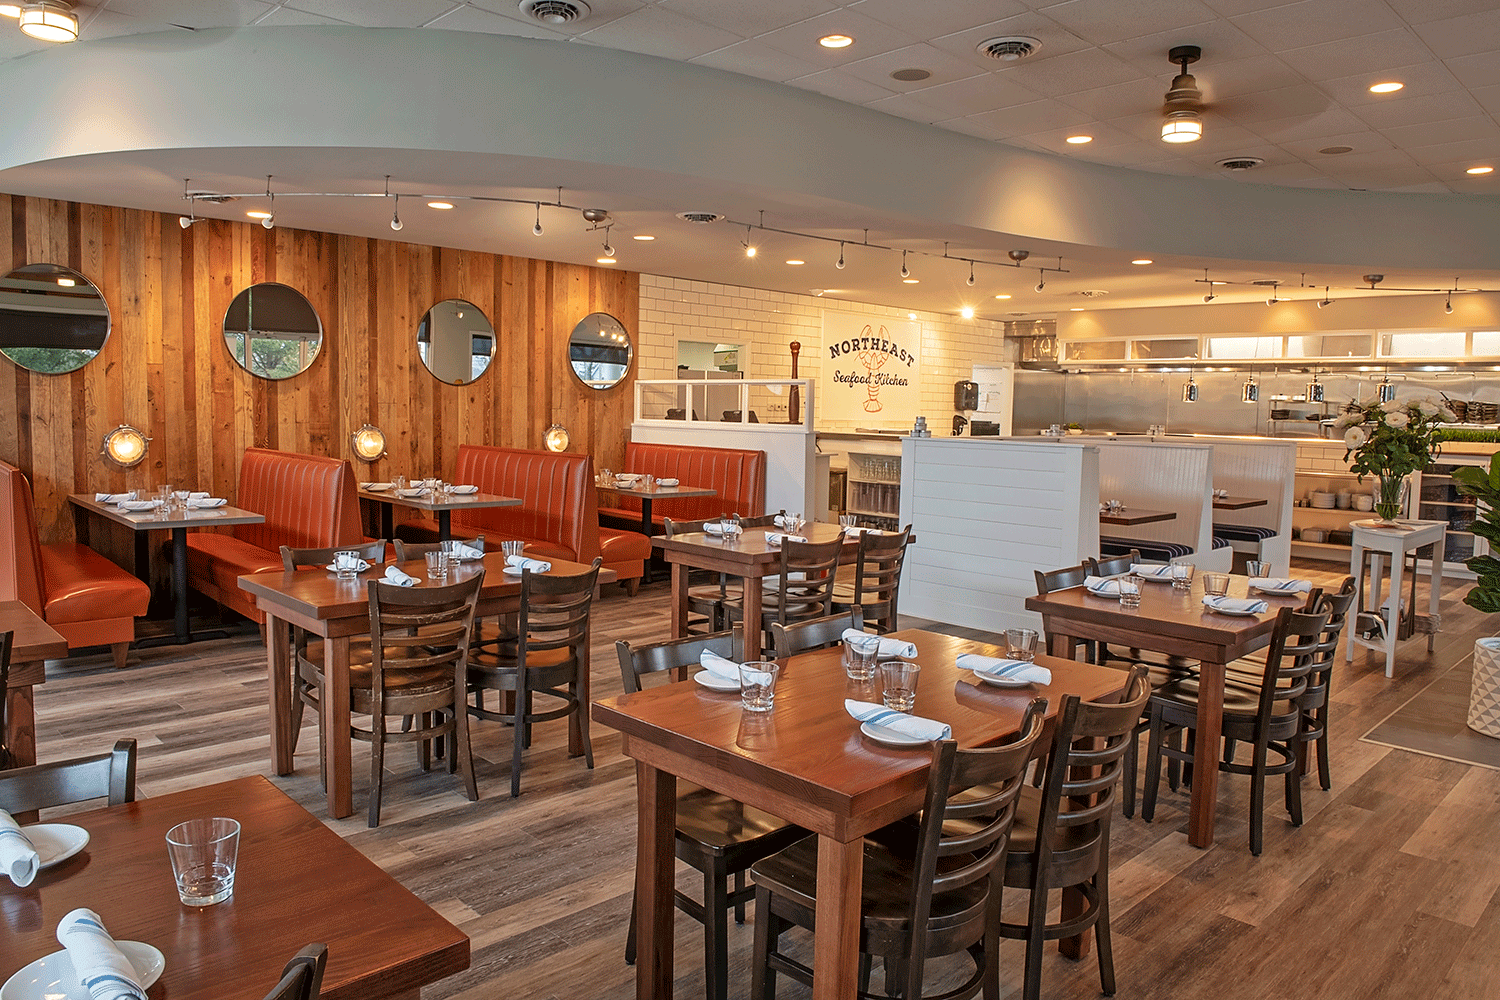 sodel_concepts_northeast_seafood_kitchen_04.png